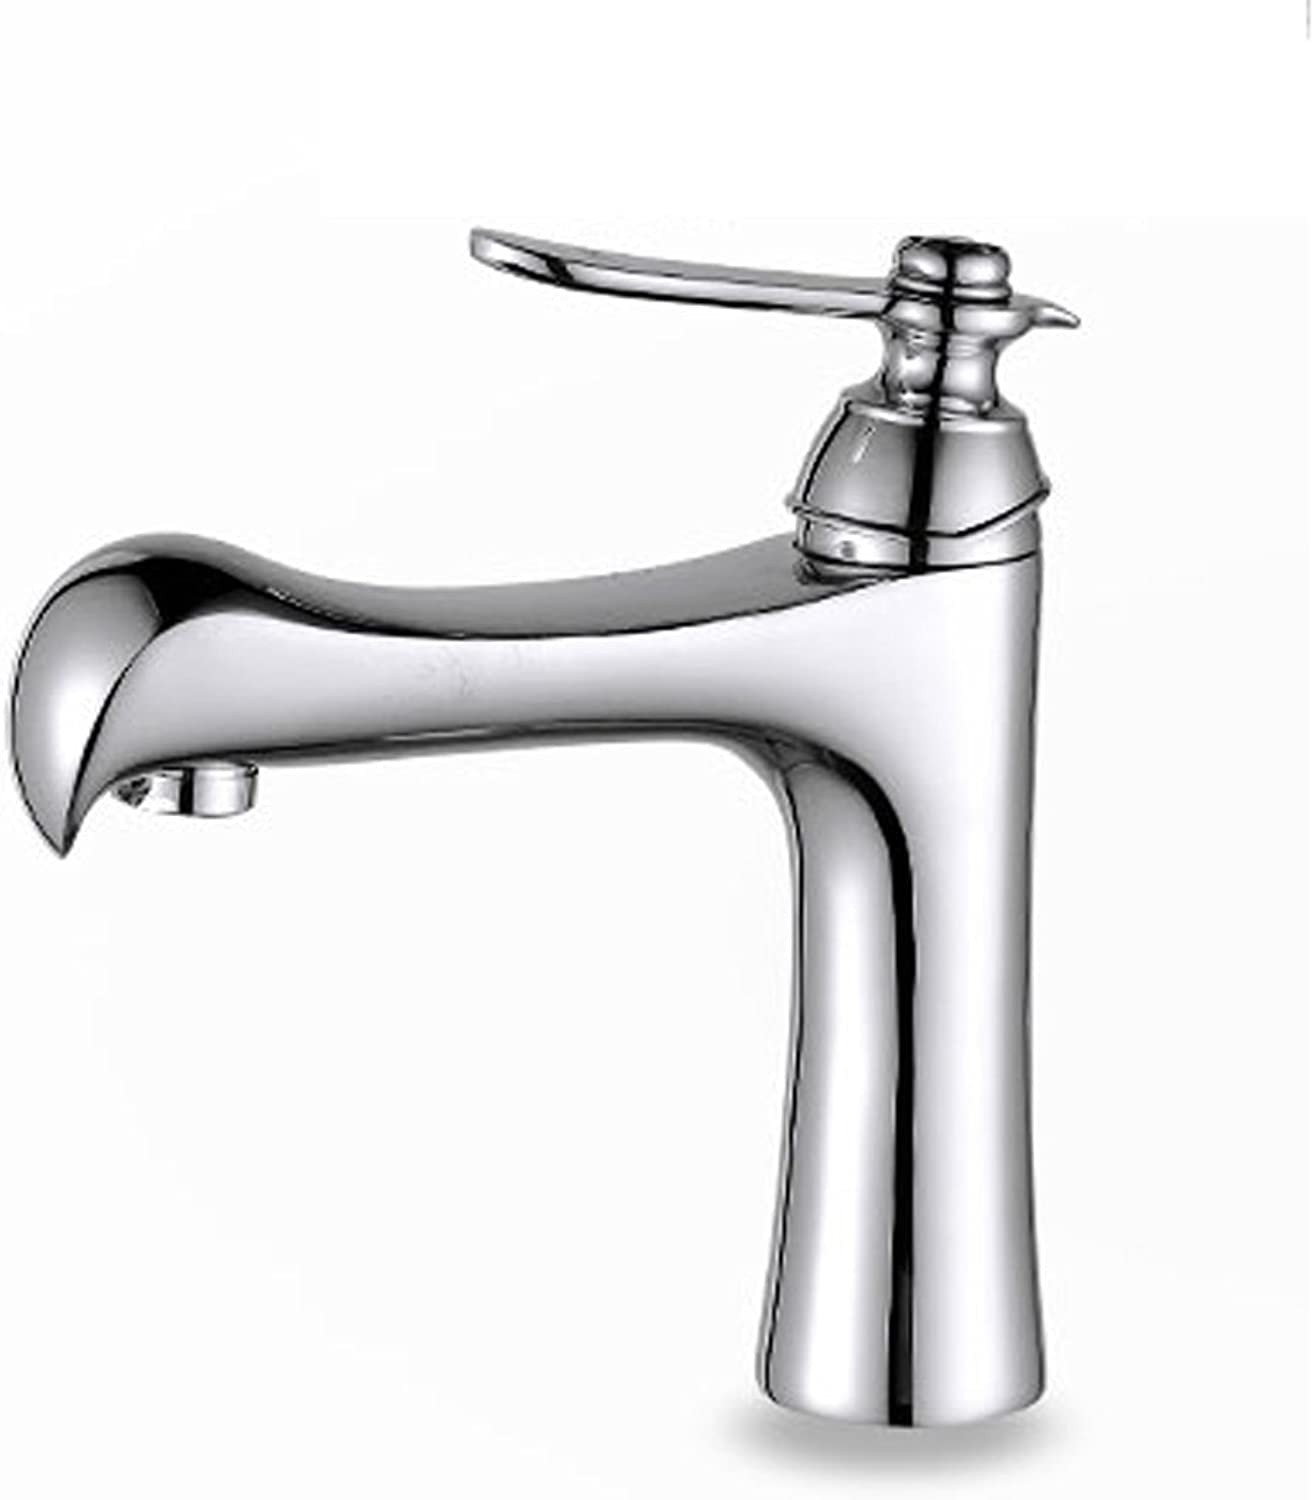 Bidet Taps Single-hole Faucet Copper Hot And Cold Bathroom Wash Basin Mixing Valve Aperture 32MM To 40MM Can Be Installed